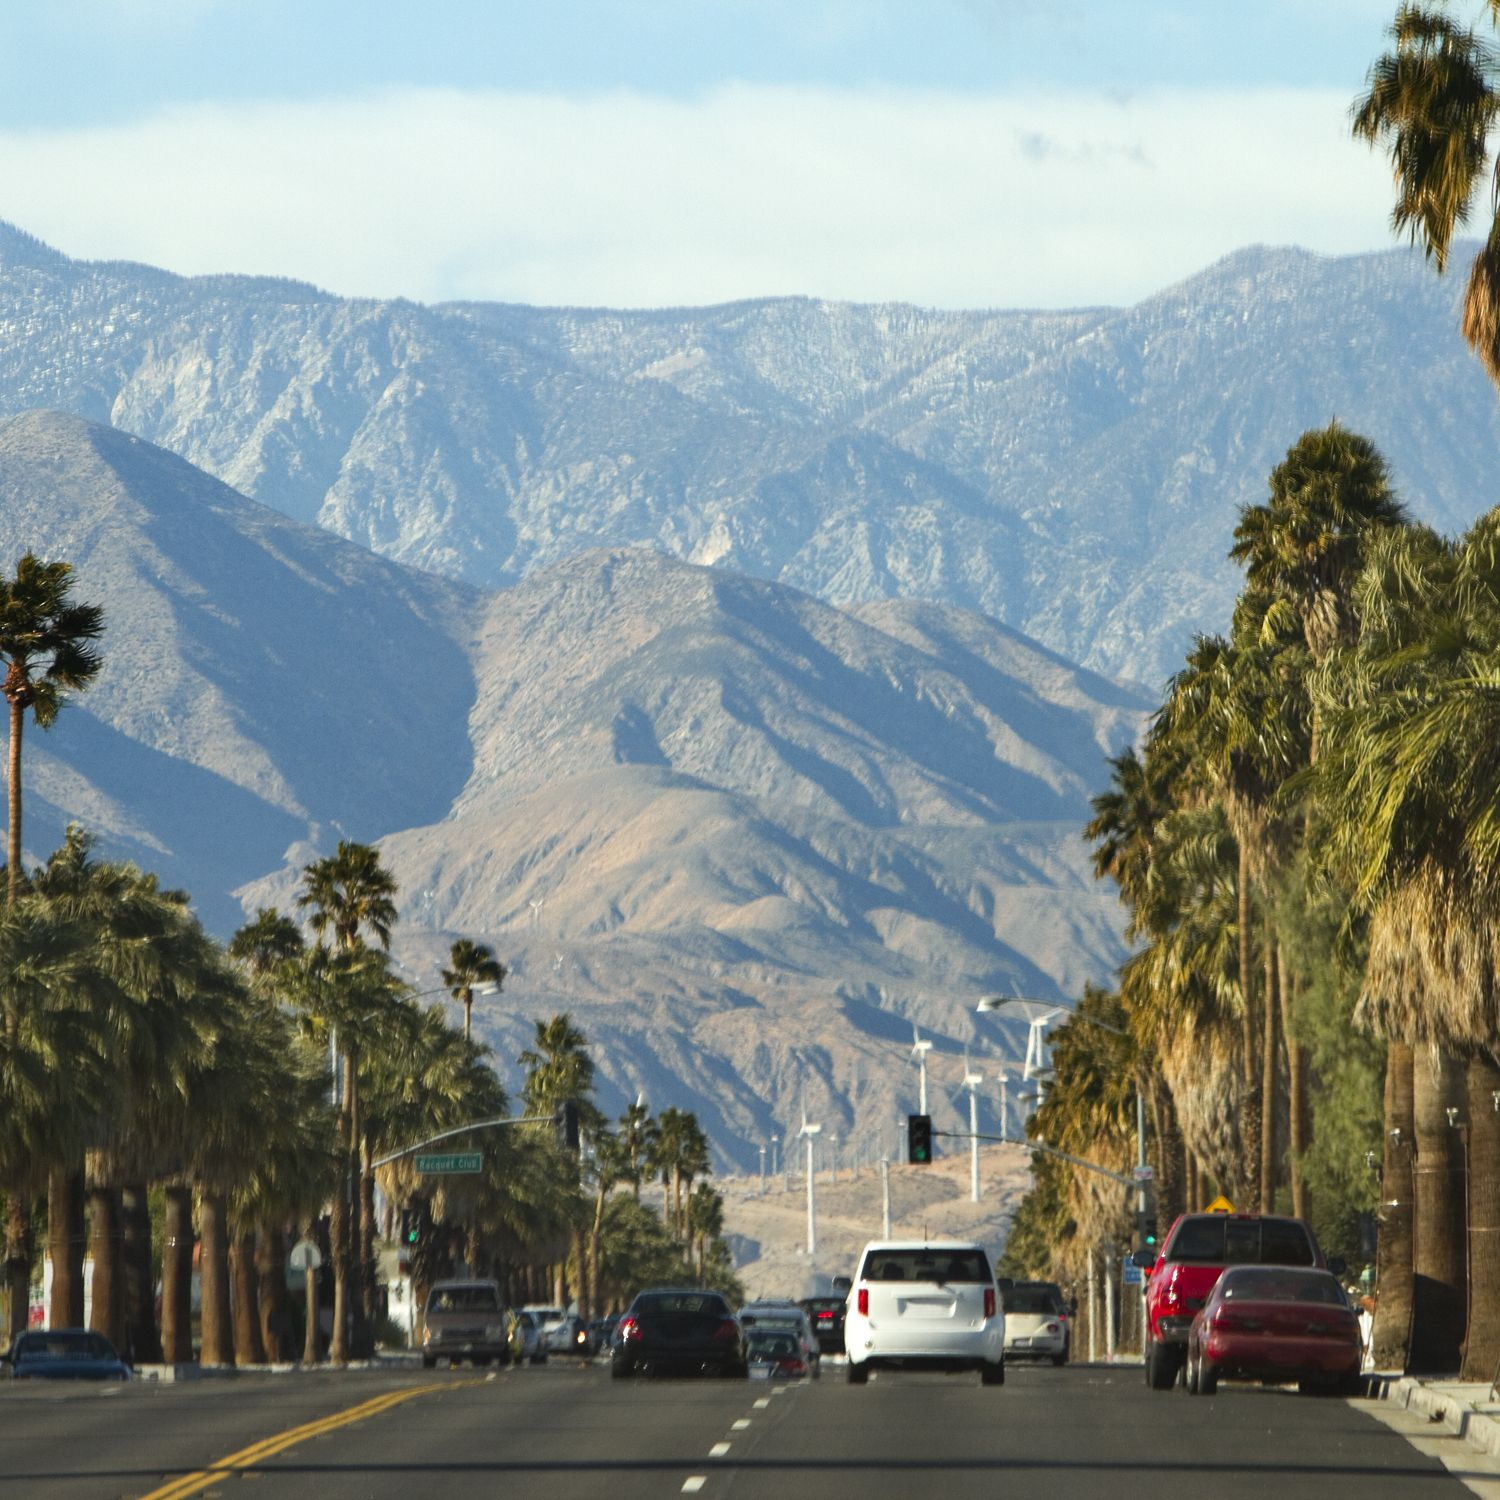 Best Gay-Friendly Hotels and Resorts in Palm Springs